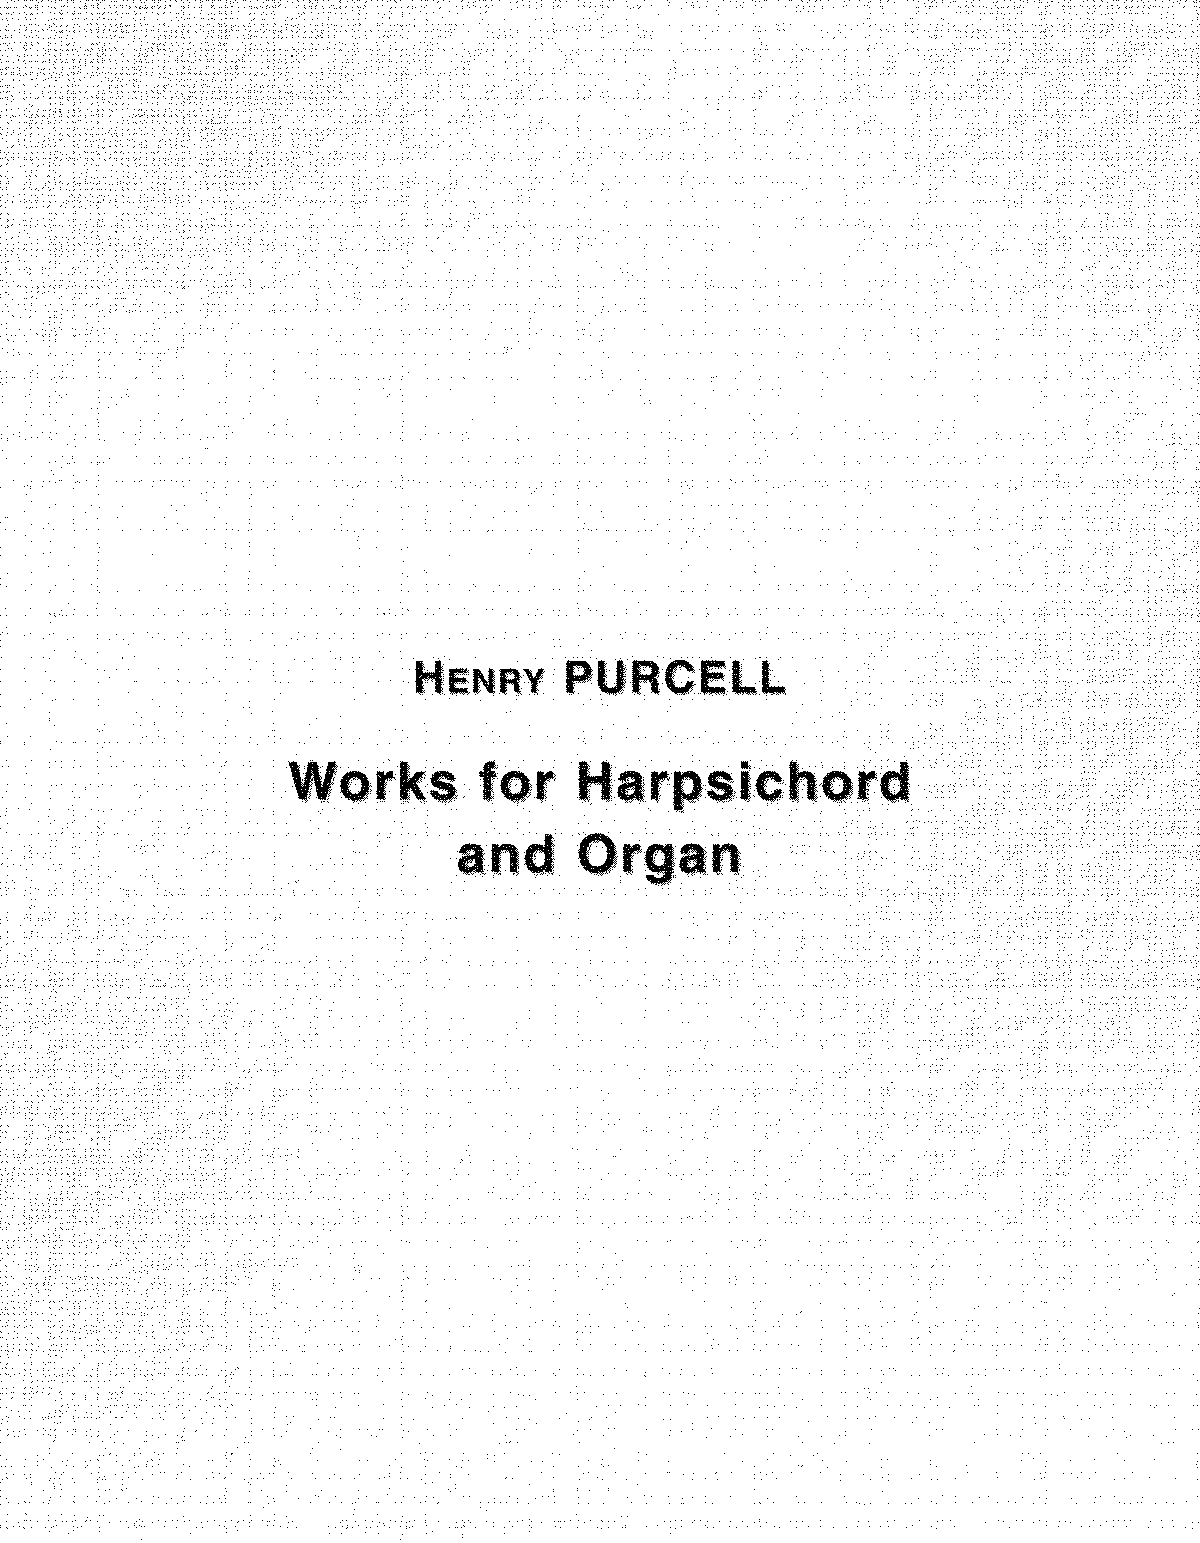 PMLP21226-Purcell - Works for Harpsichord and Organ.pdf